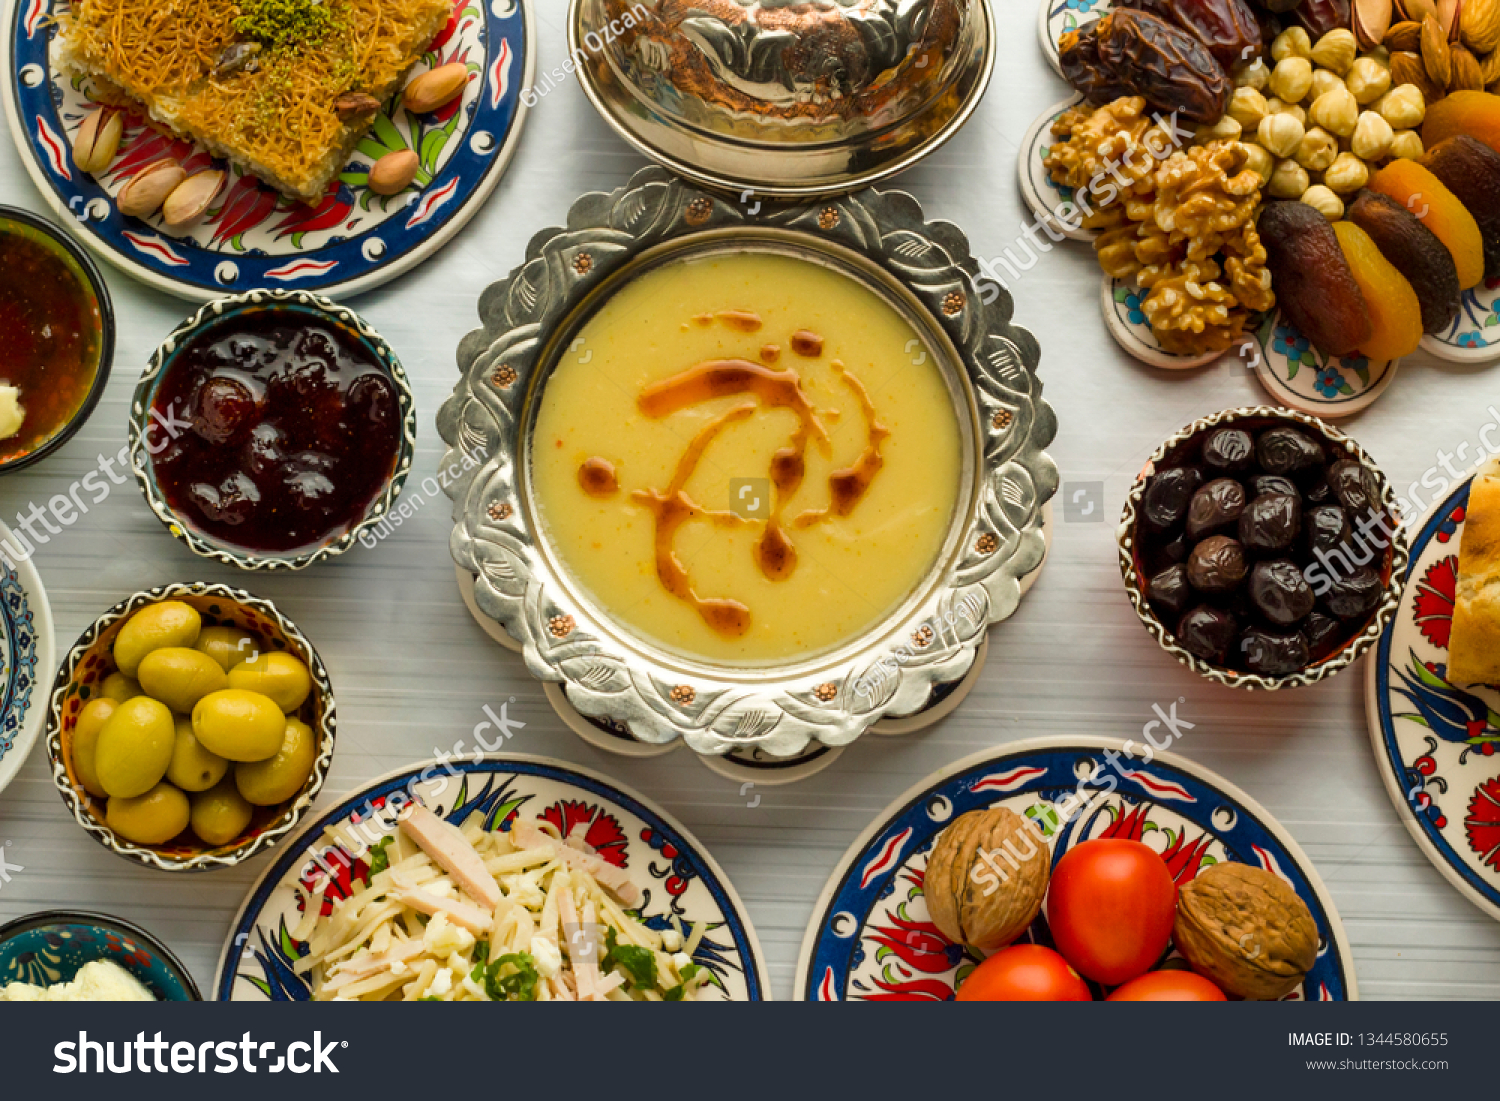 Traditional Turkish Ramadan,iftar meal table with lentil soup on the middle of table with other foods.Used Traditional Turkish Ceramic utensils and copper soup bowl together.